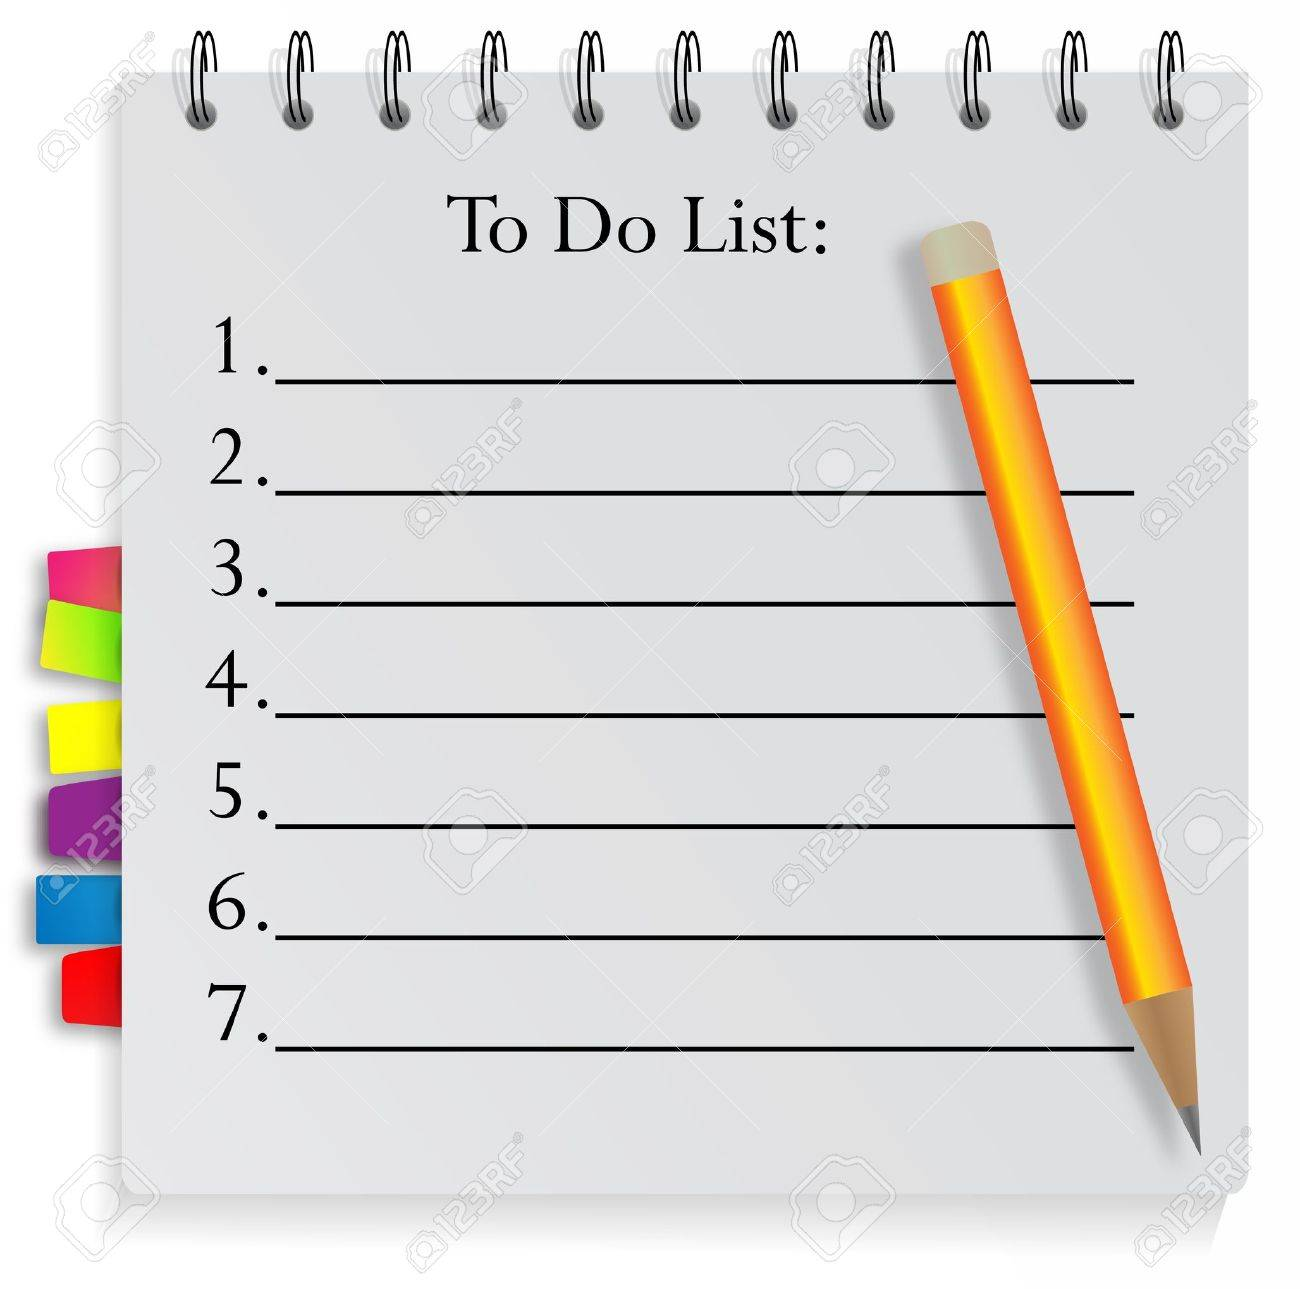 To Do List Royalty Free Cliparts, Vectors, And Stock Illustration. Image  12157386.